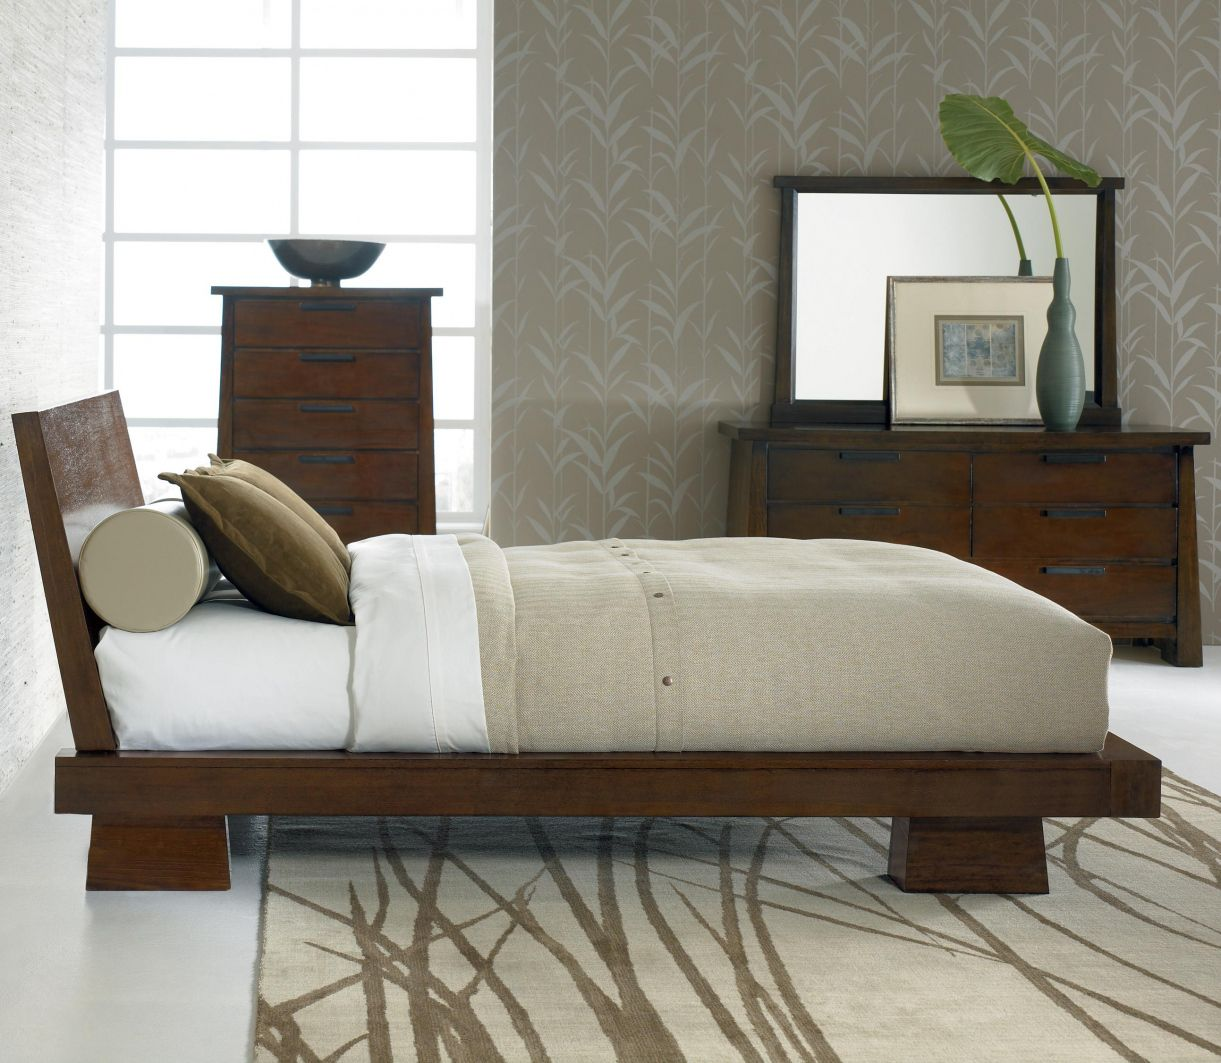 oriental bedroom asian furniture style. BOULDER - Haiku Designs Is Proud To Announce The Return Of Our Very Popular Hiro Platform Bed. In Some Markets Previously Known As Hida Bed, Oriental Bedroom Asian Furniture Style R